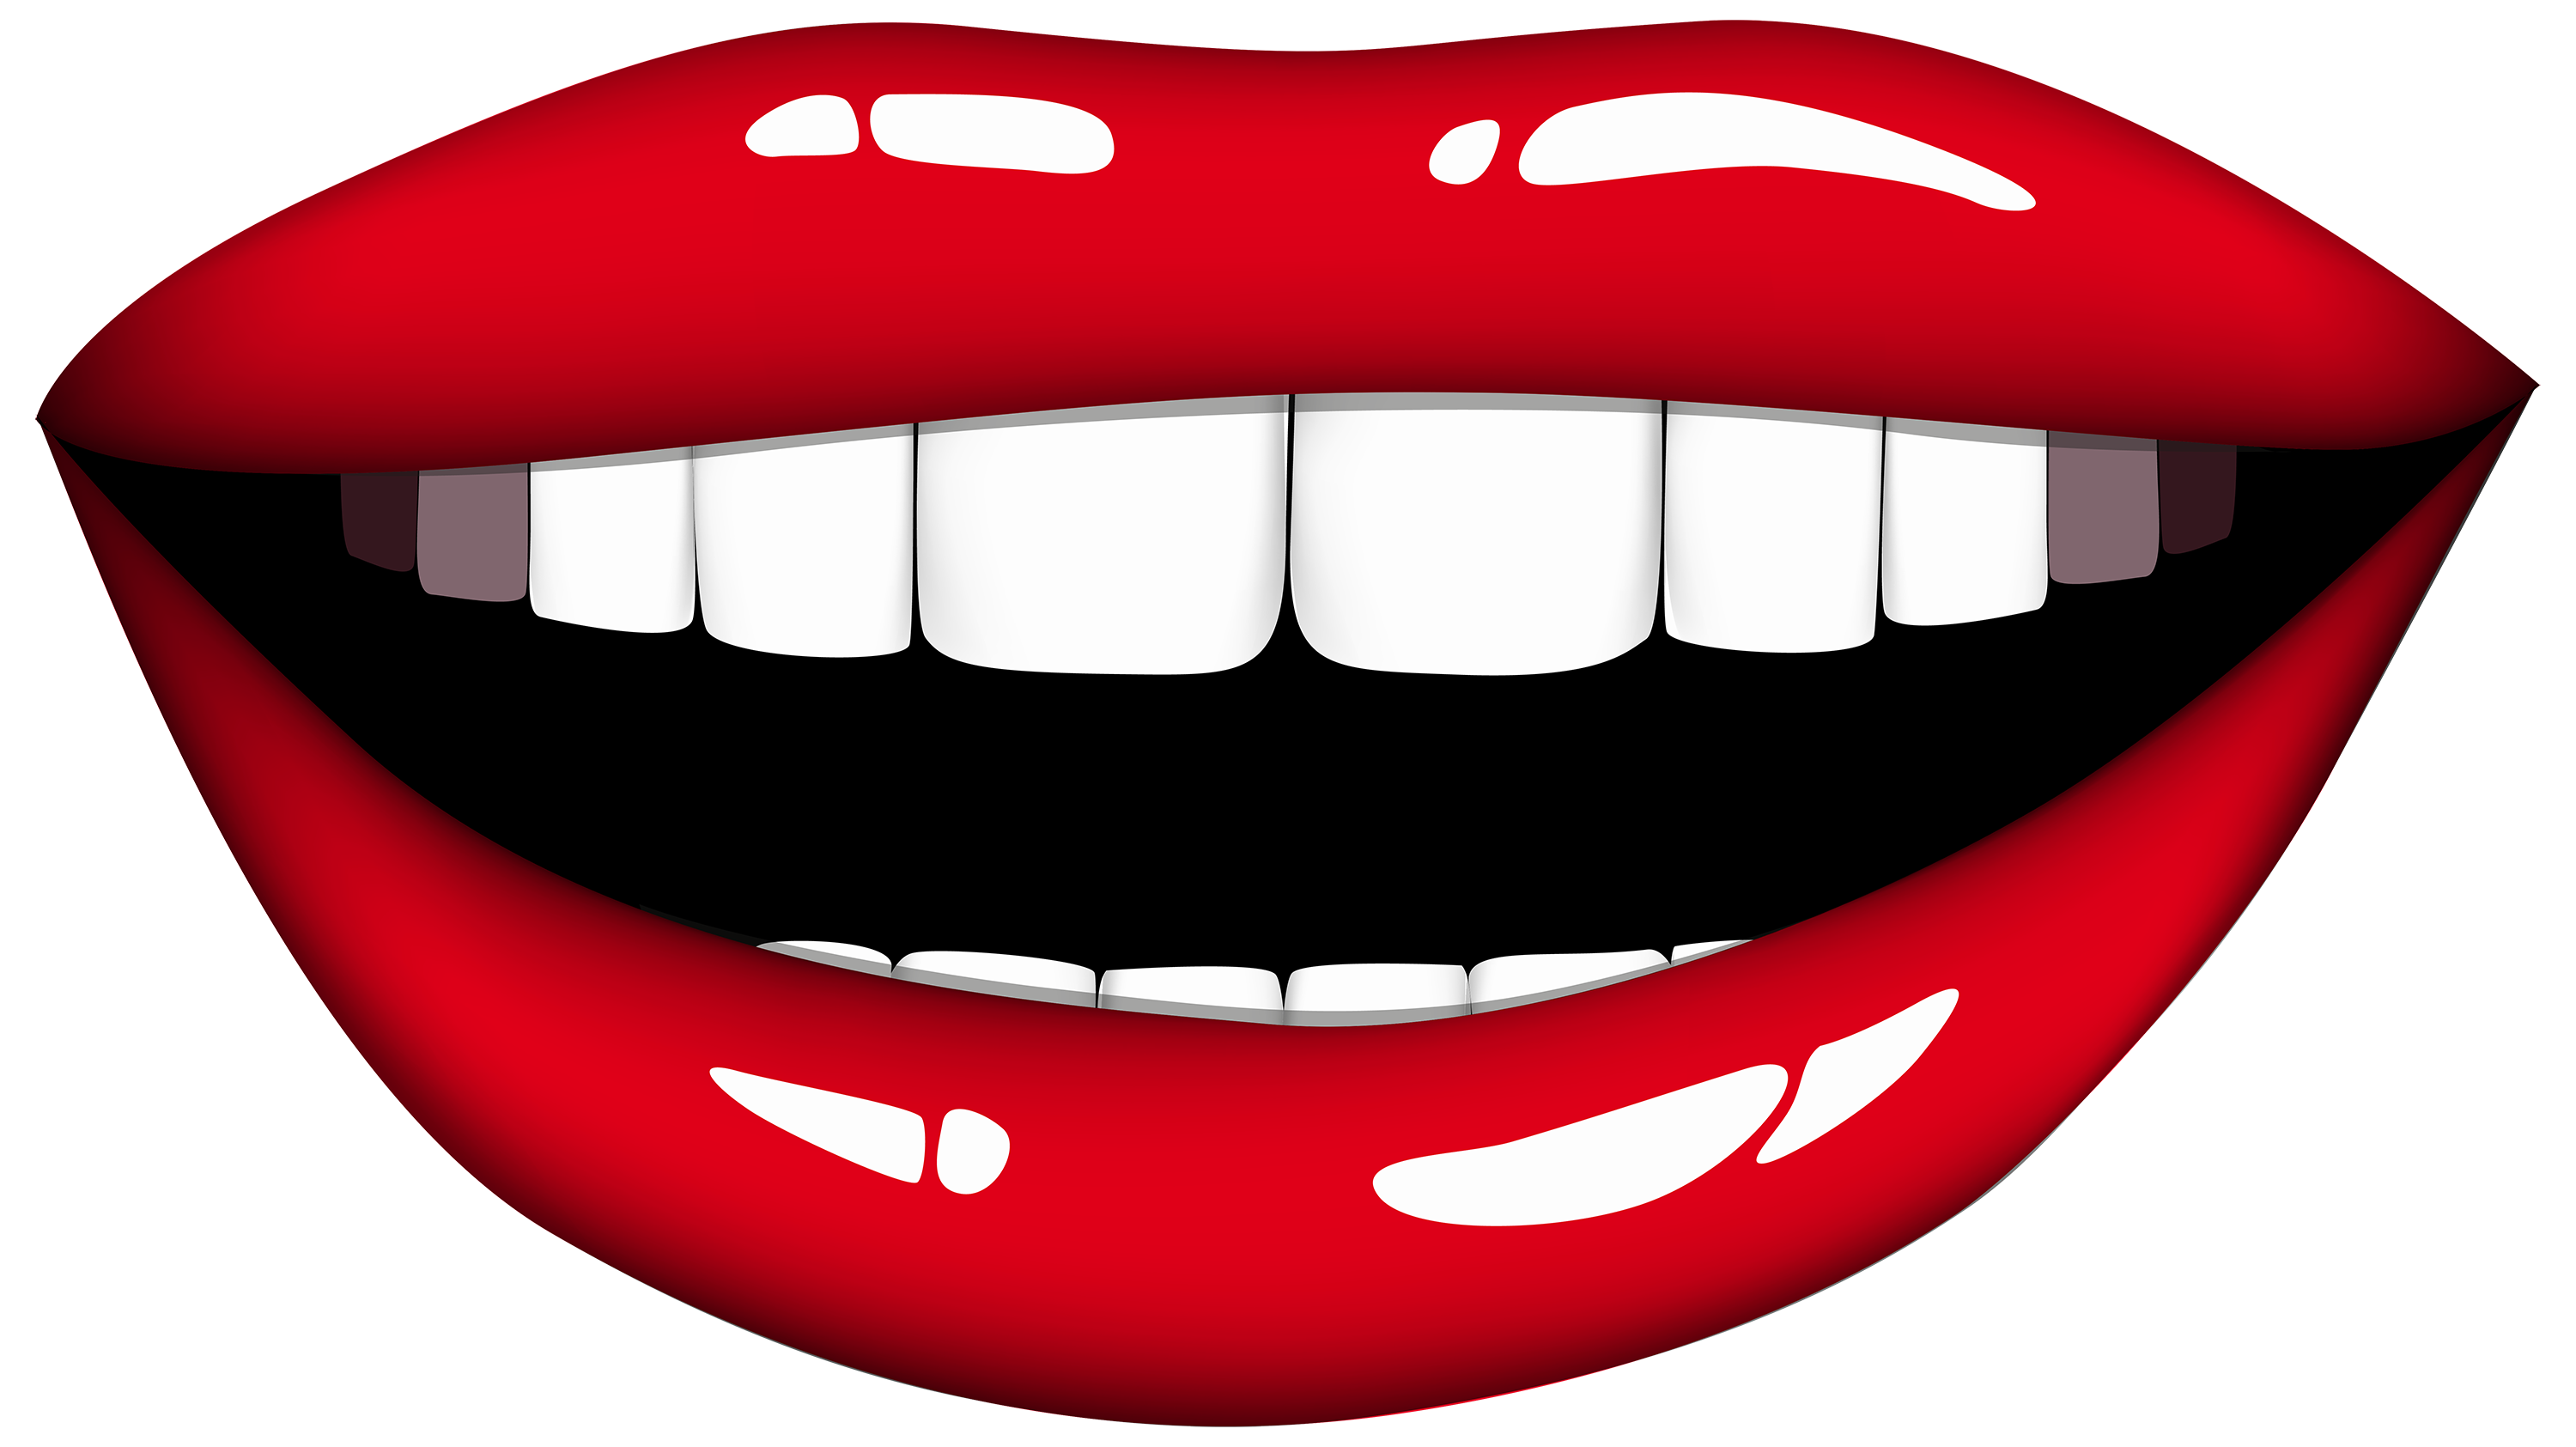 Smiling png clipart best. Mouth svg crazy graphic library download